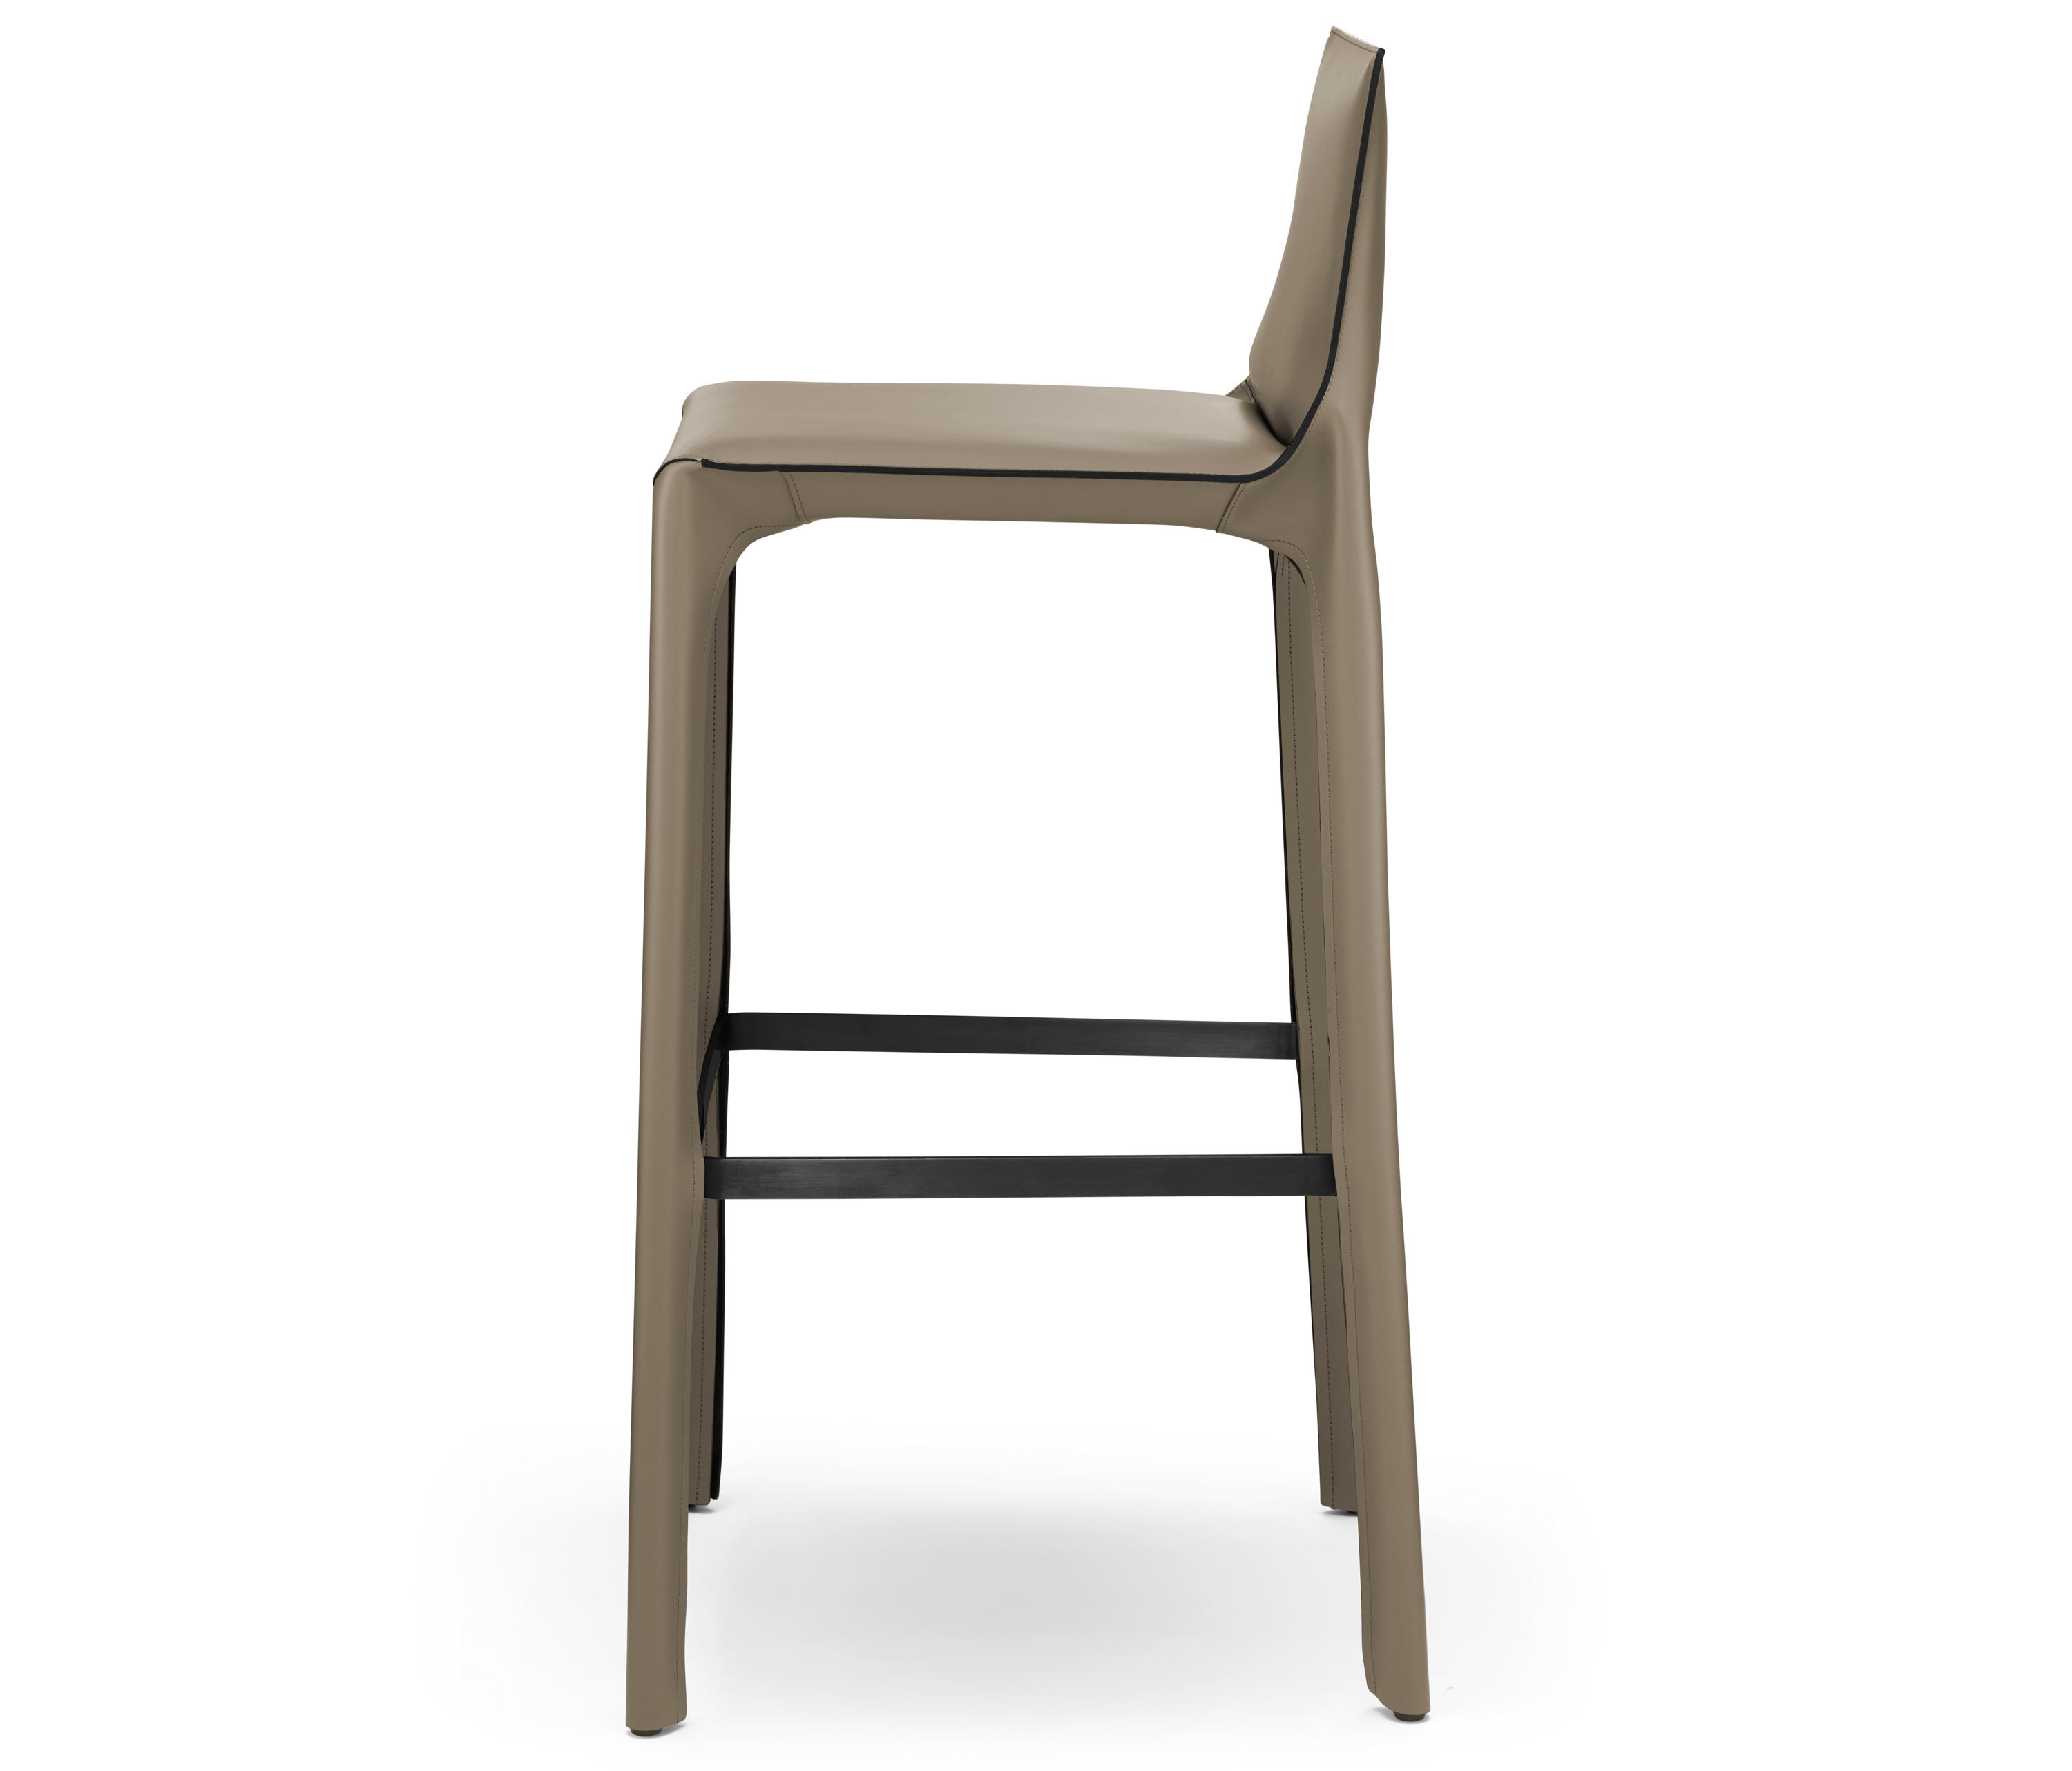 SADDLE CHAIR BARSTOOL Bar stools from Walter K